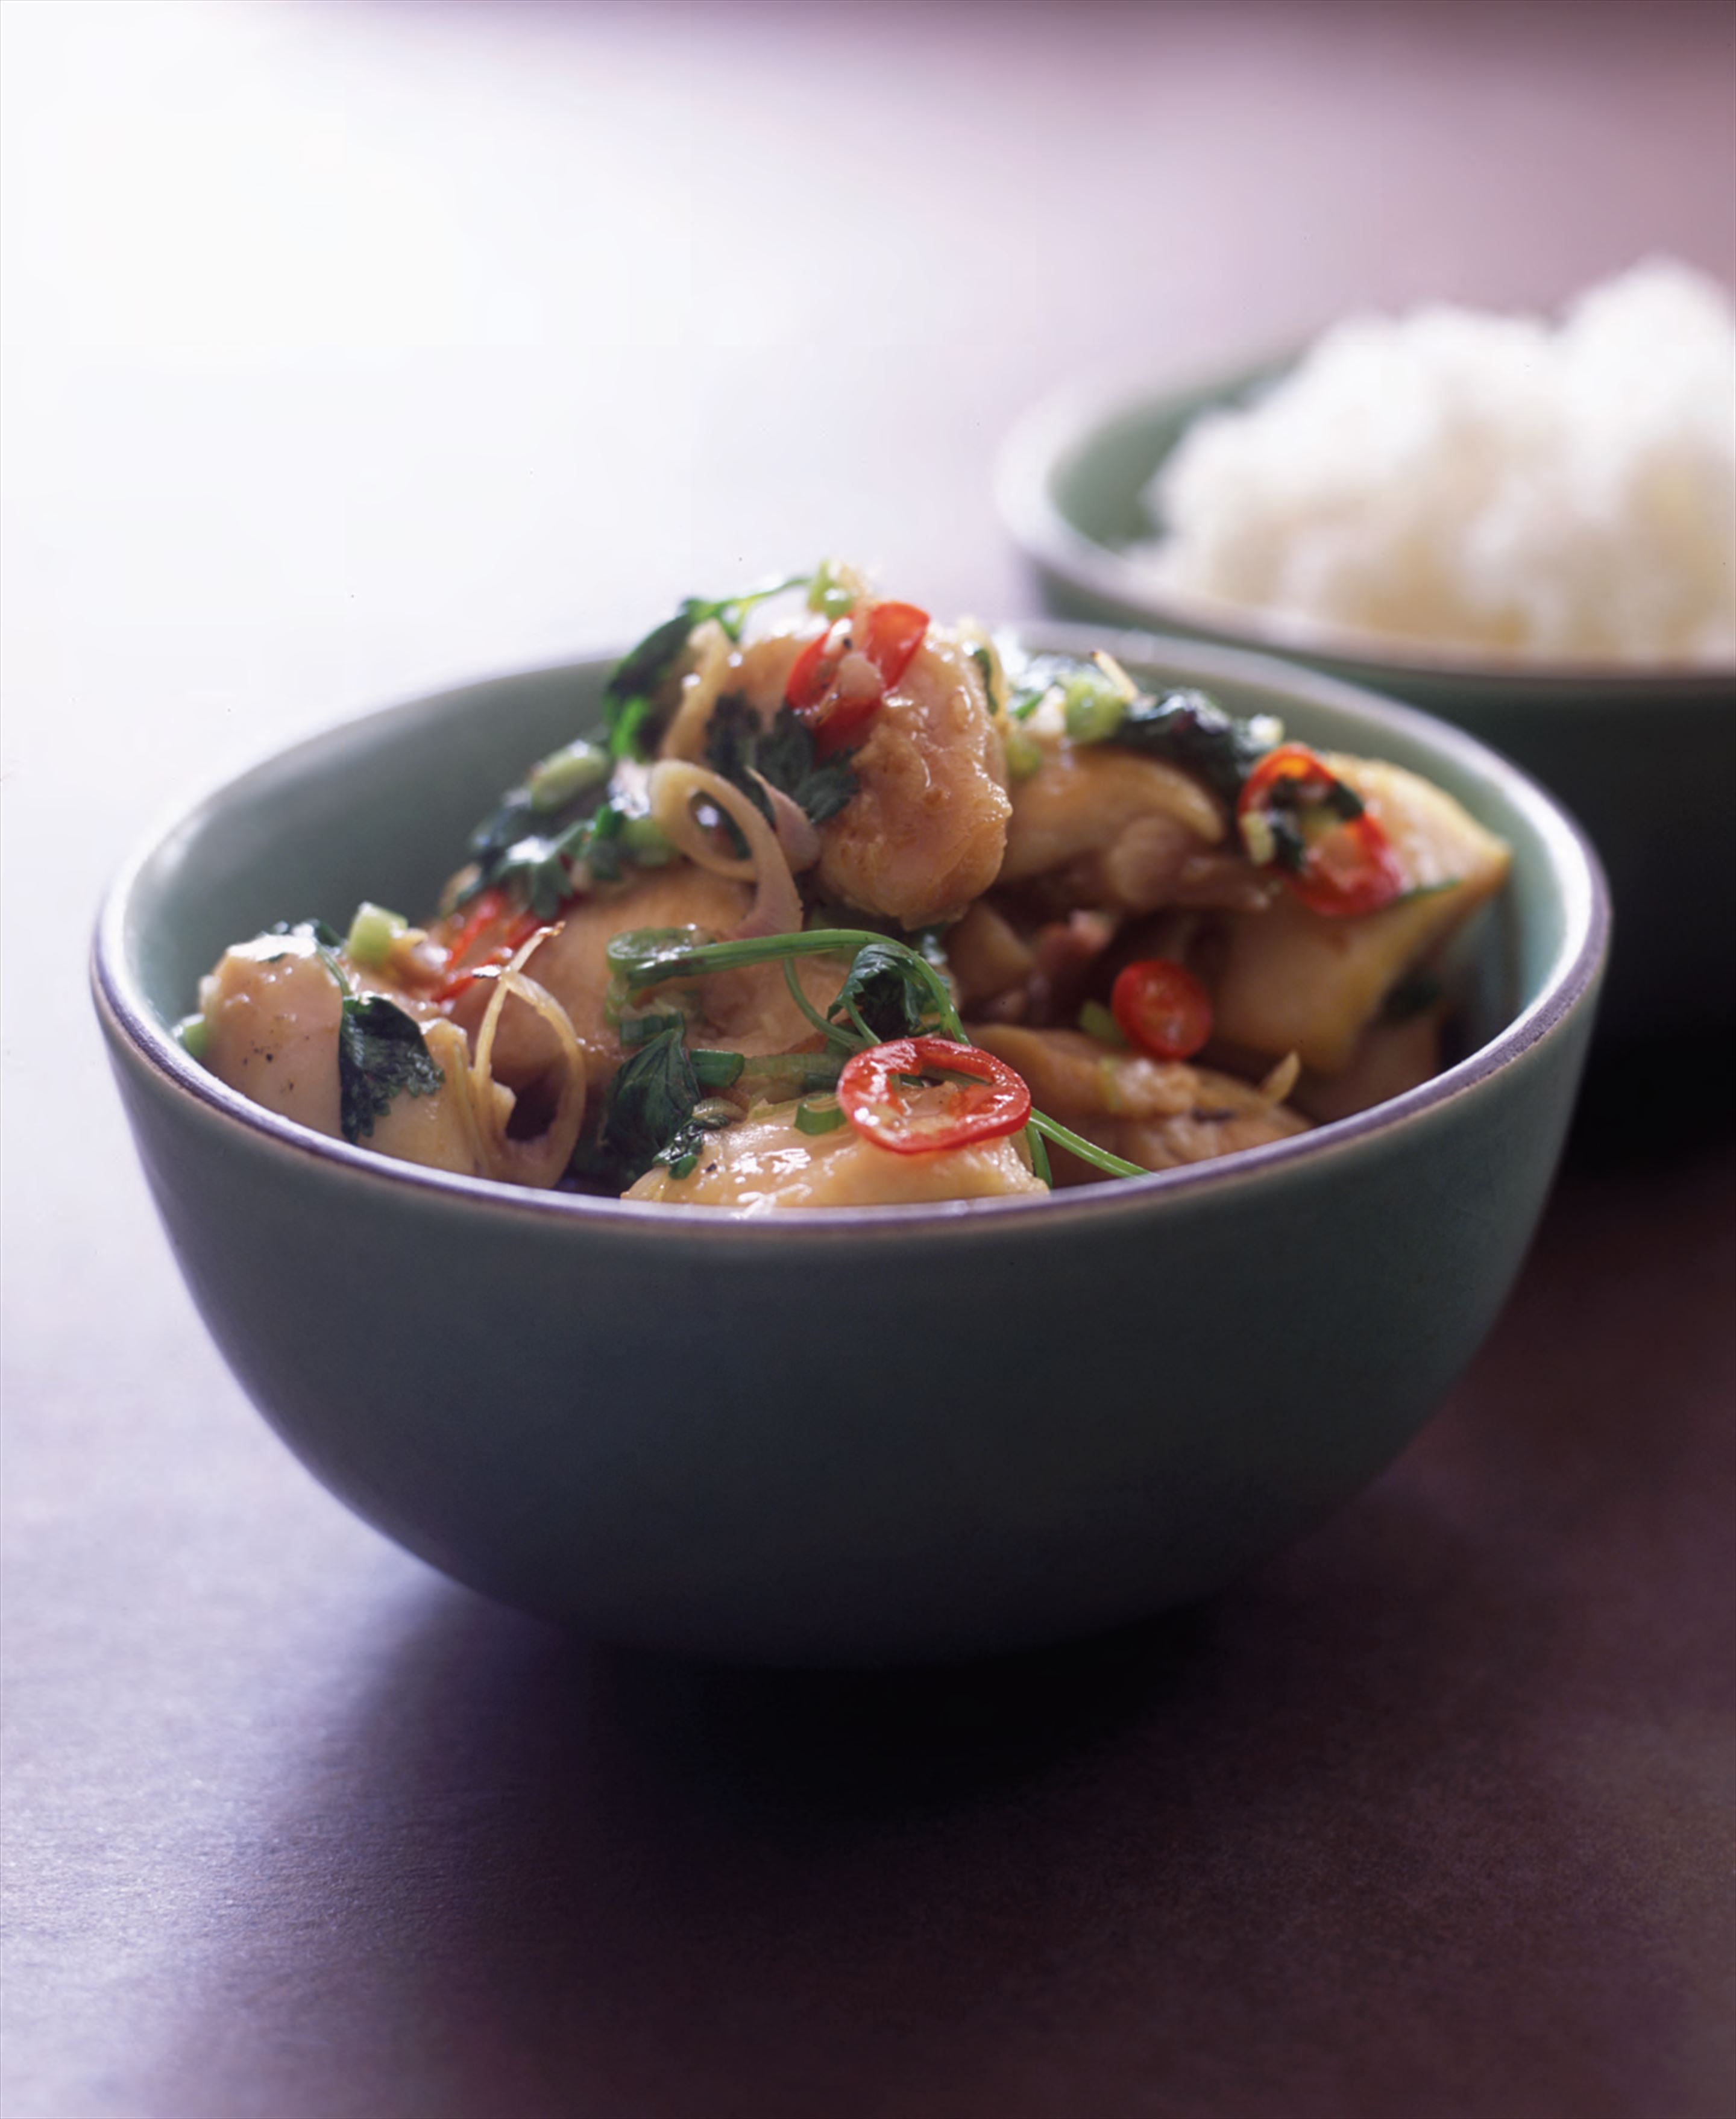 Chicken with lemongrass and chilli